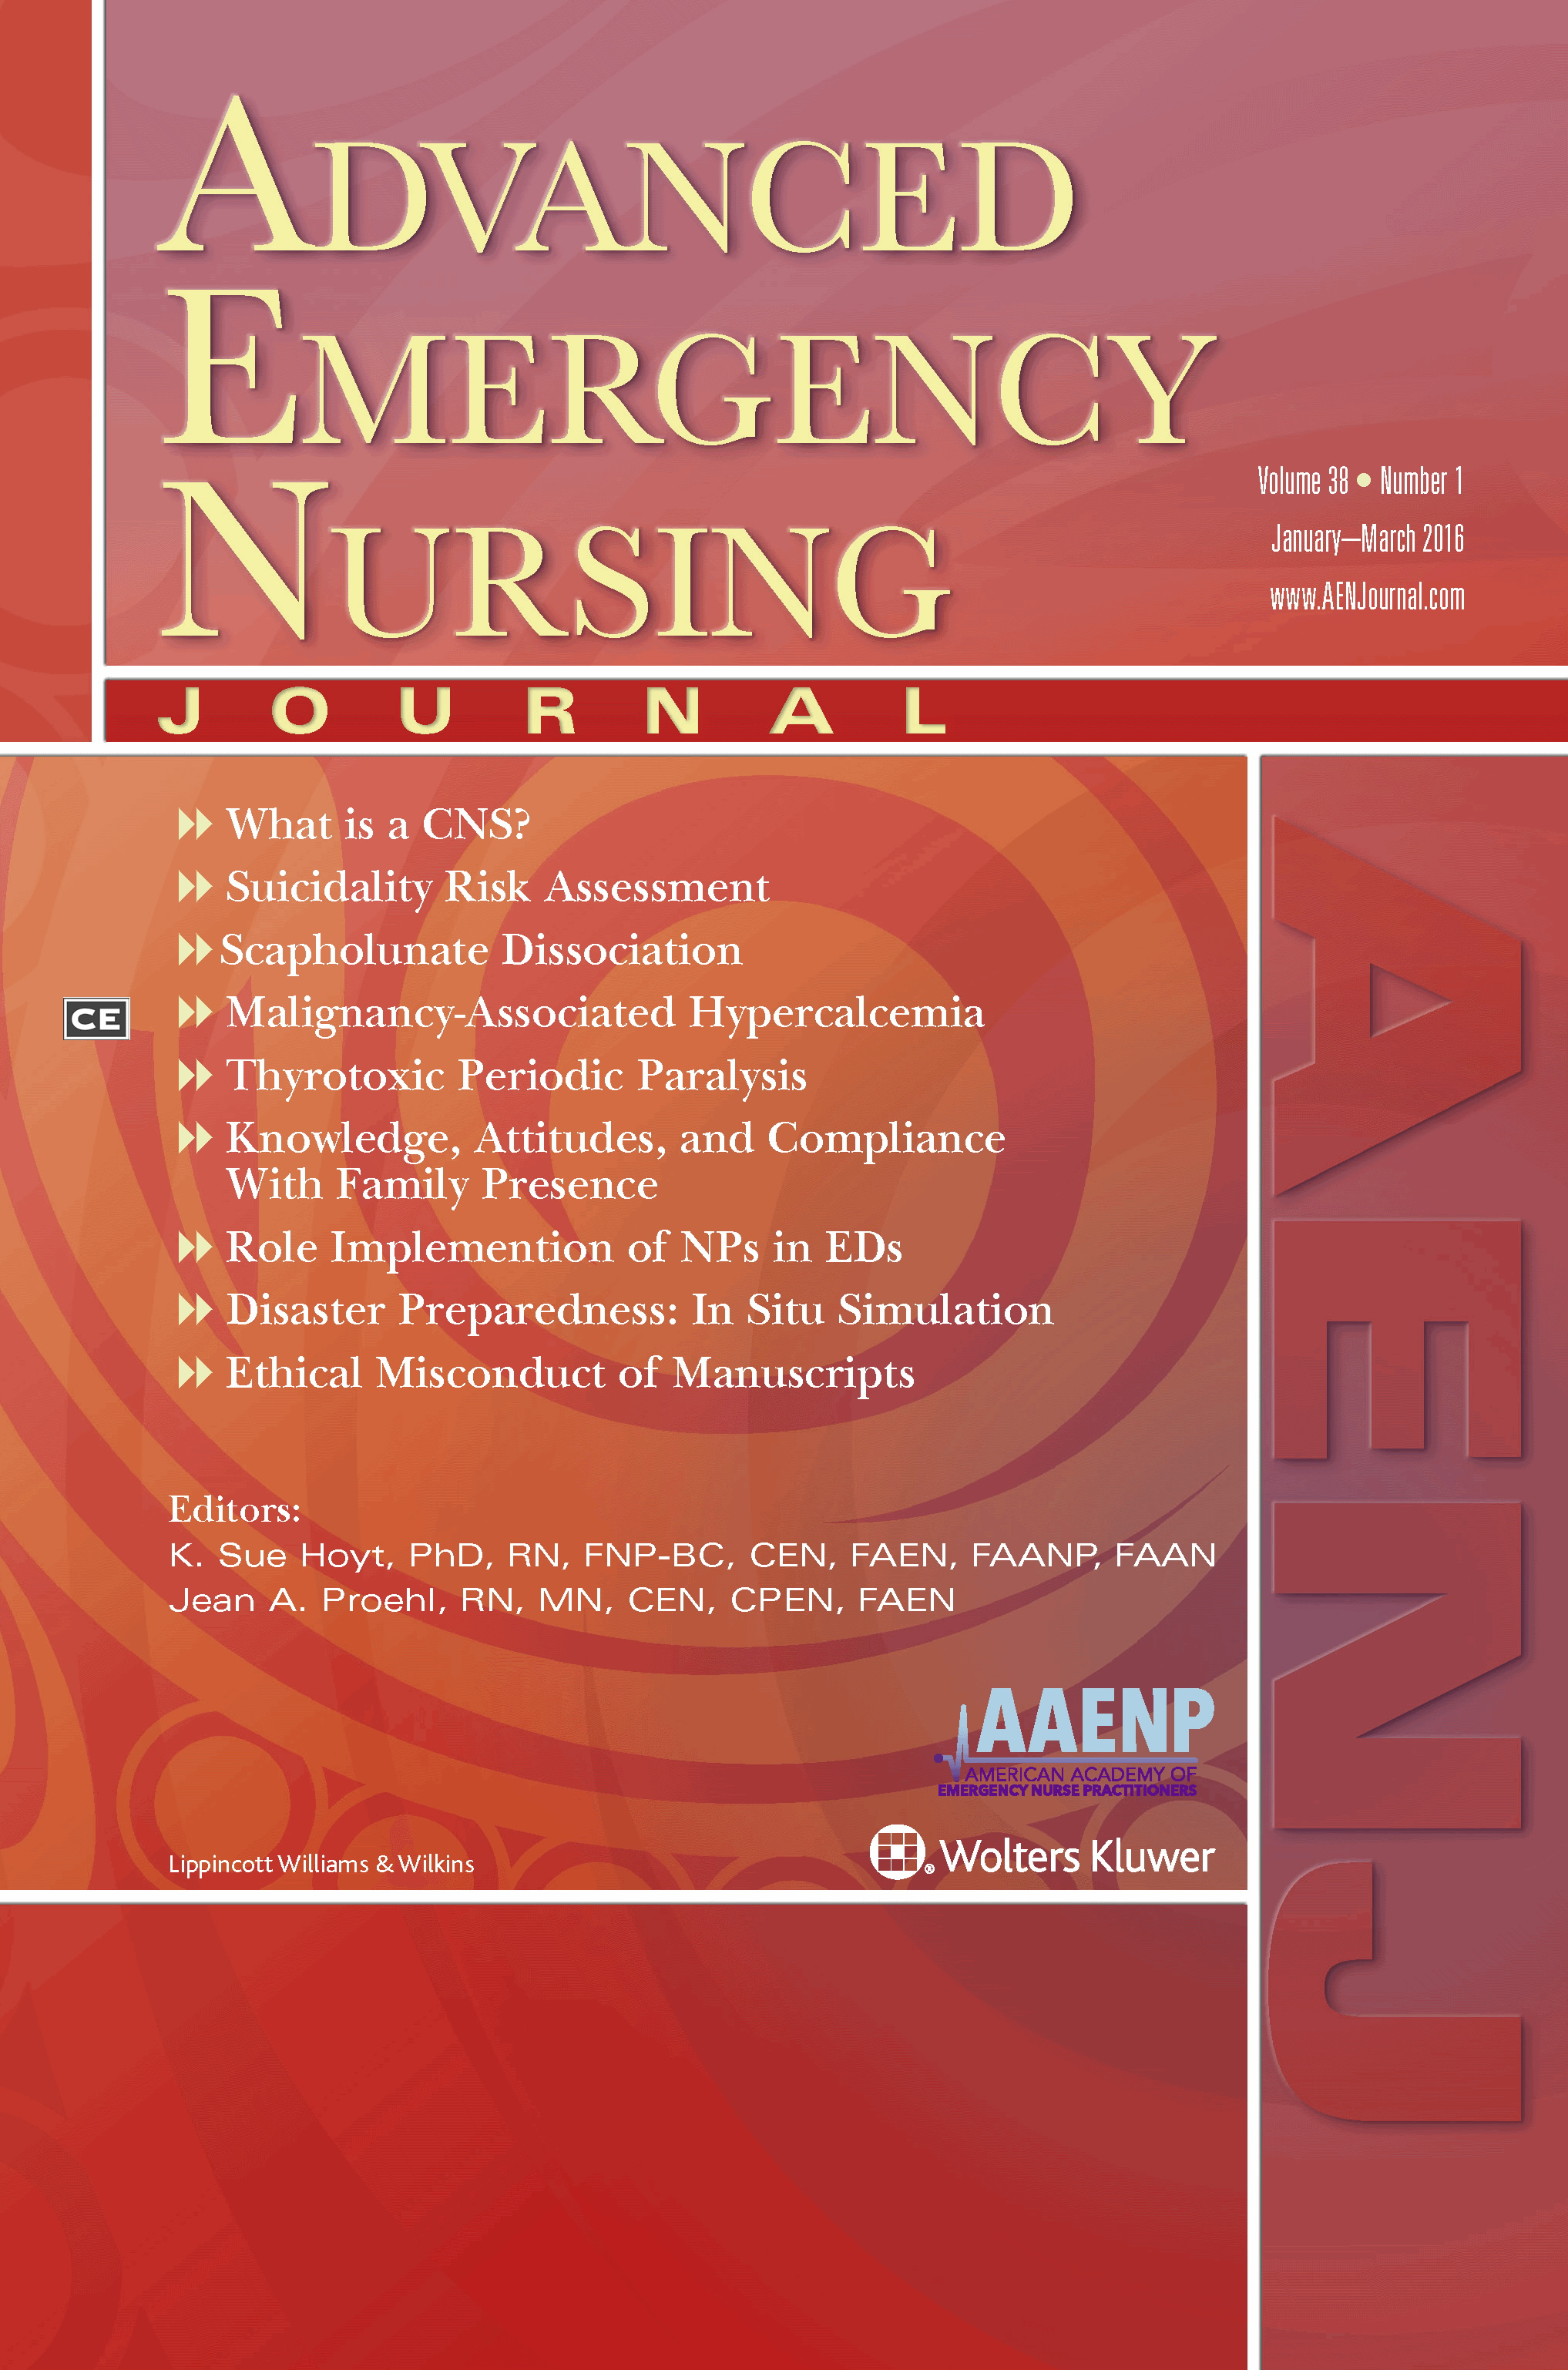 Nurse Practitioners in the Emergency Department: Barriers